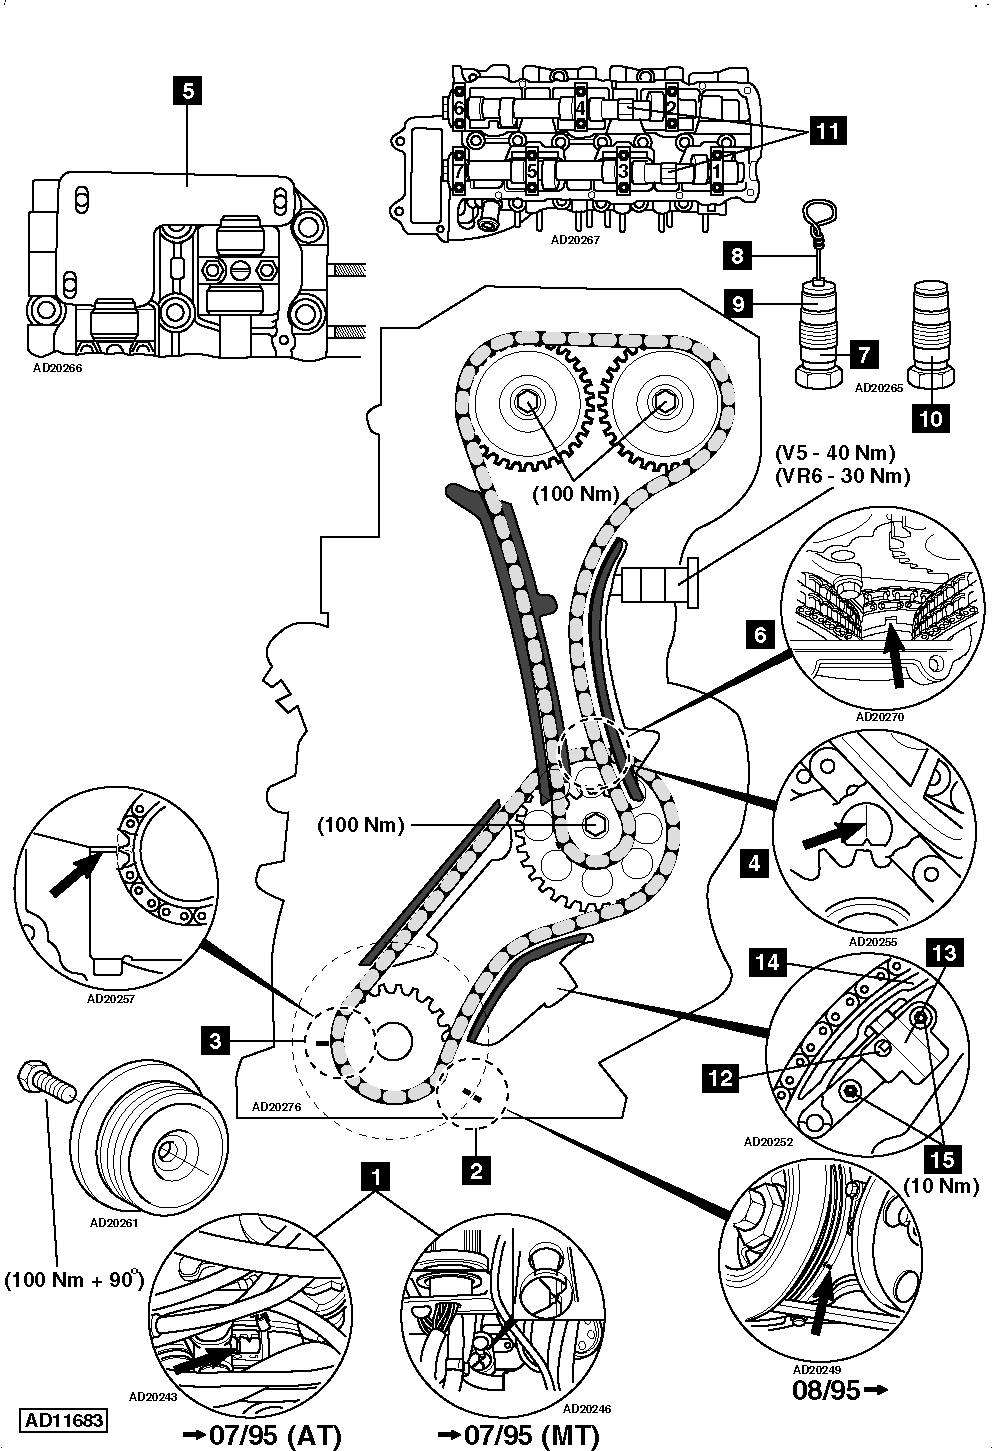 medium resolution of vr6 engine timing diagram wiring diagram pmz vr6 cam timing marks vr6 engine timing diagram